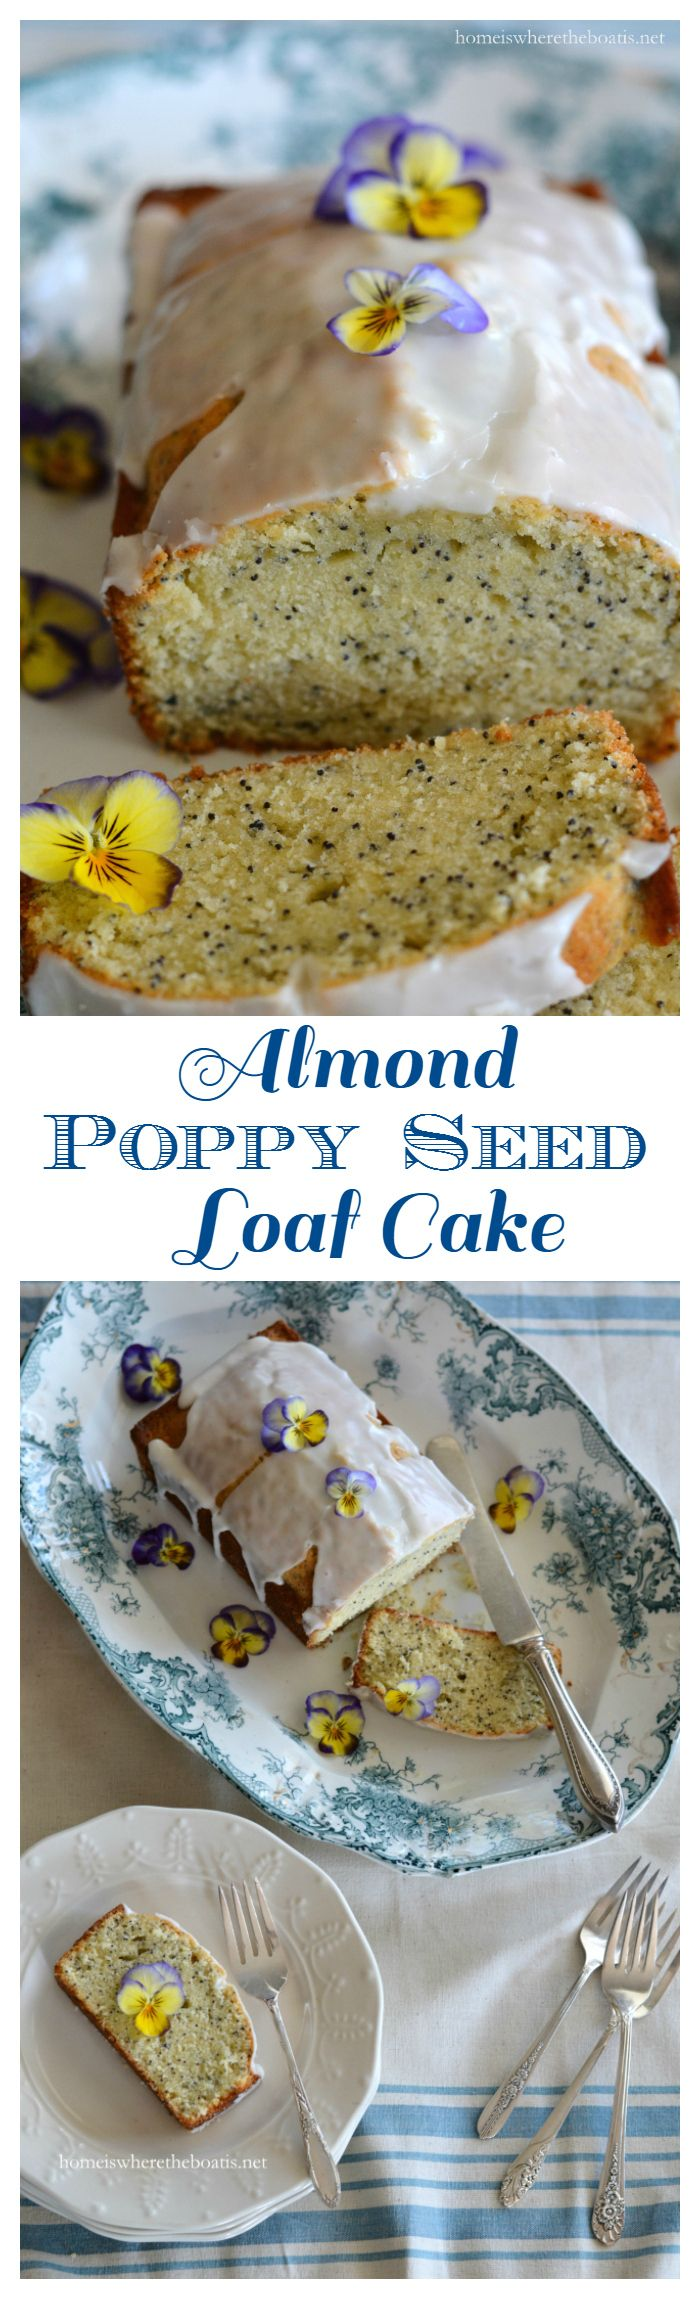 Almond Poppy Seed Loaf Cake from Home Is Where The Boat Is